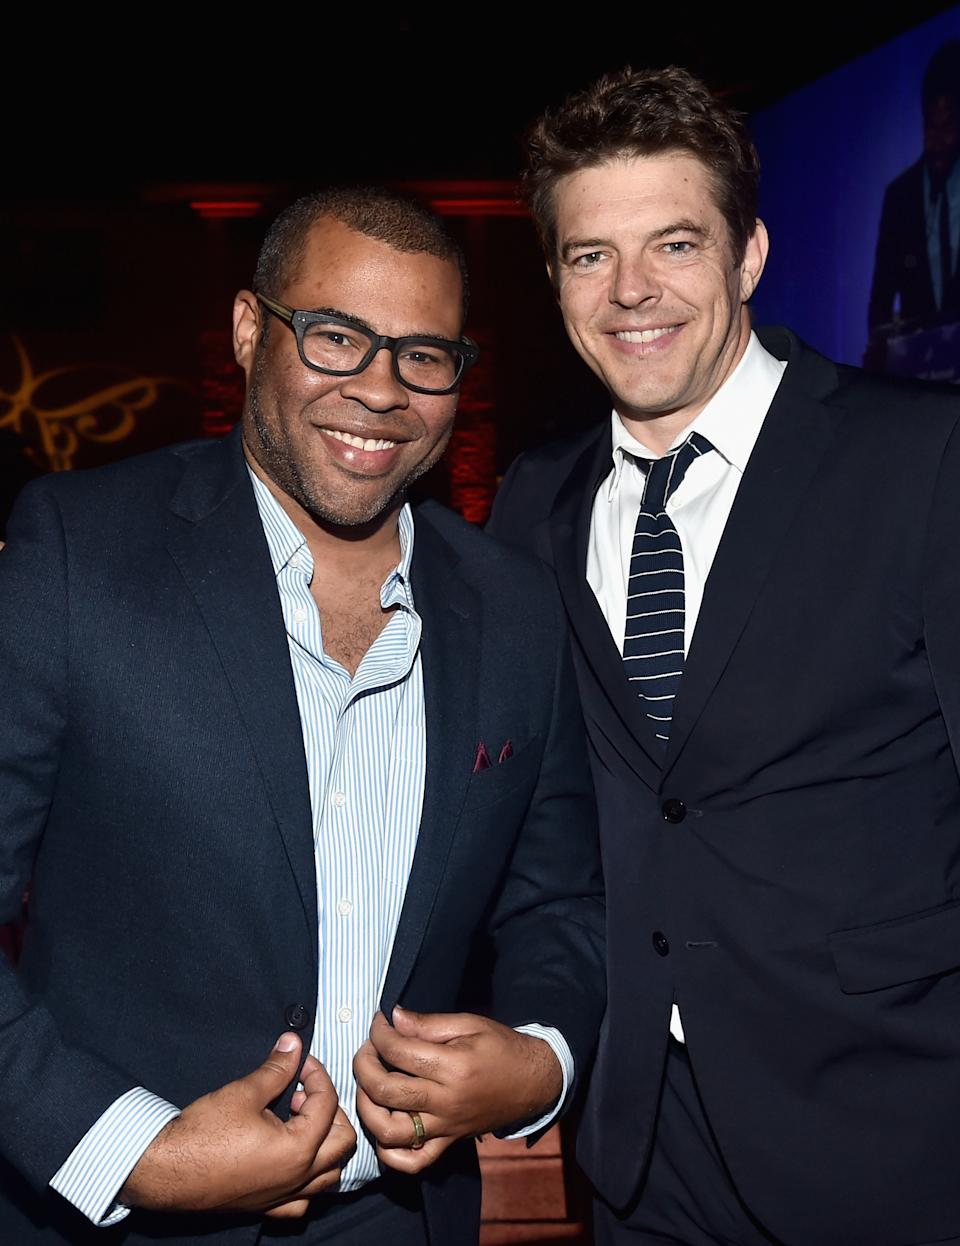 LOS ANGELES, CA - JUNE 03: Actor Jordan Peele (L) and producer Jason Blum at the 16th Annual Chrysalis Butterfly Ball on June 3, 2017 in Los Angeles, California.  (Photo by Alberto E. Rodriguez/Getty Images for Chrysalis Butterfly Ball)